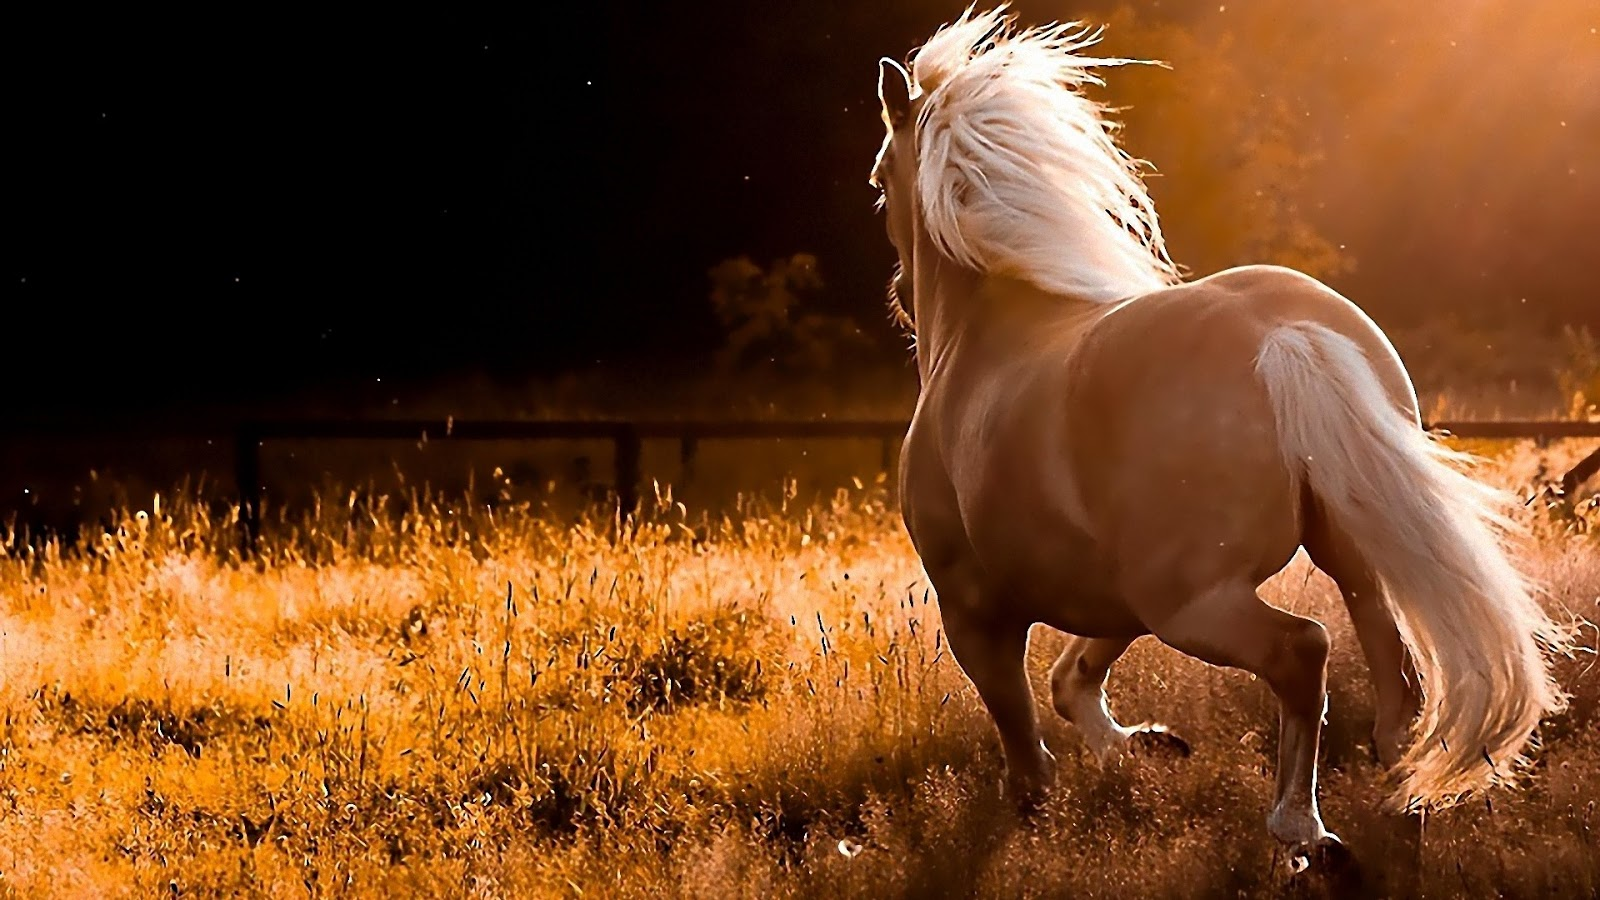 All Wallpapers Beautiful Horse Hd Wallpapers 2013 1600x900